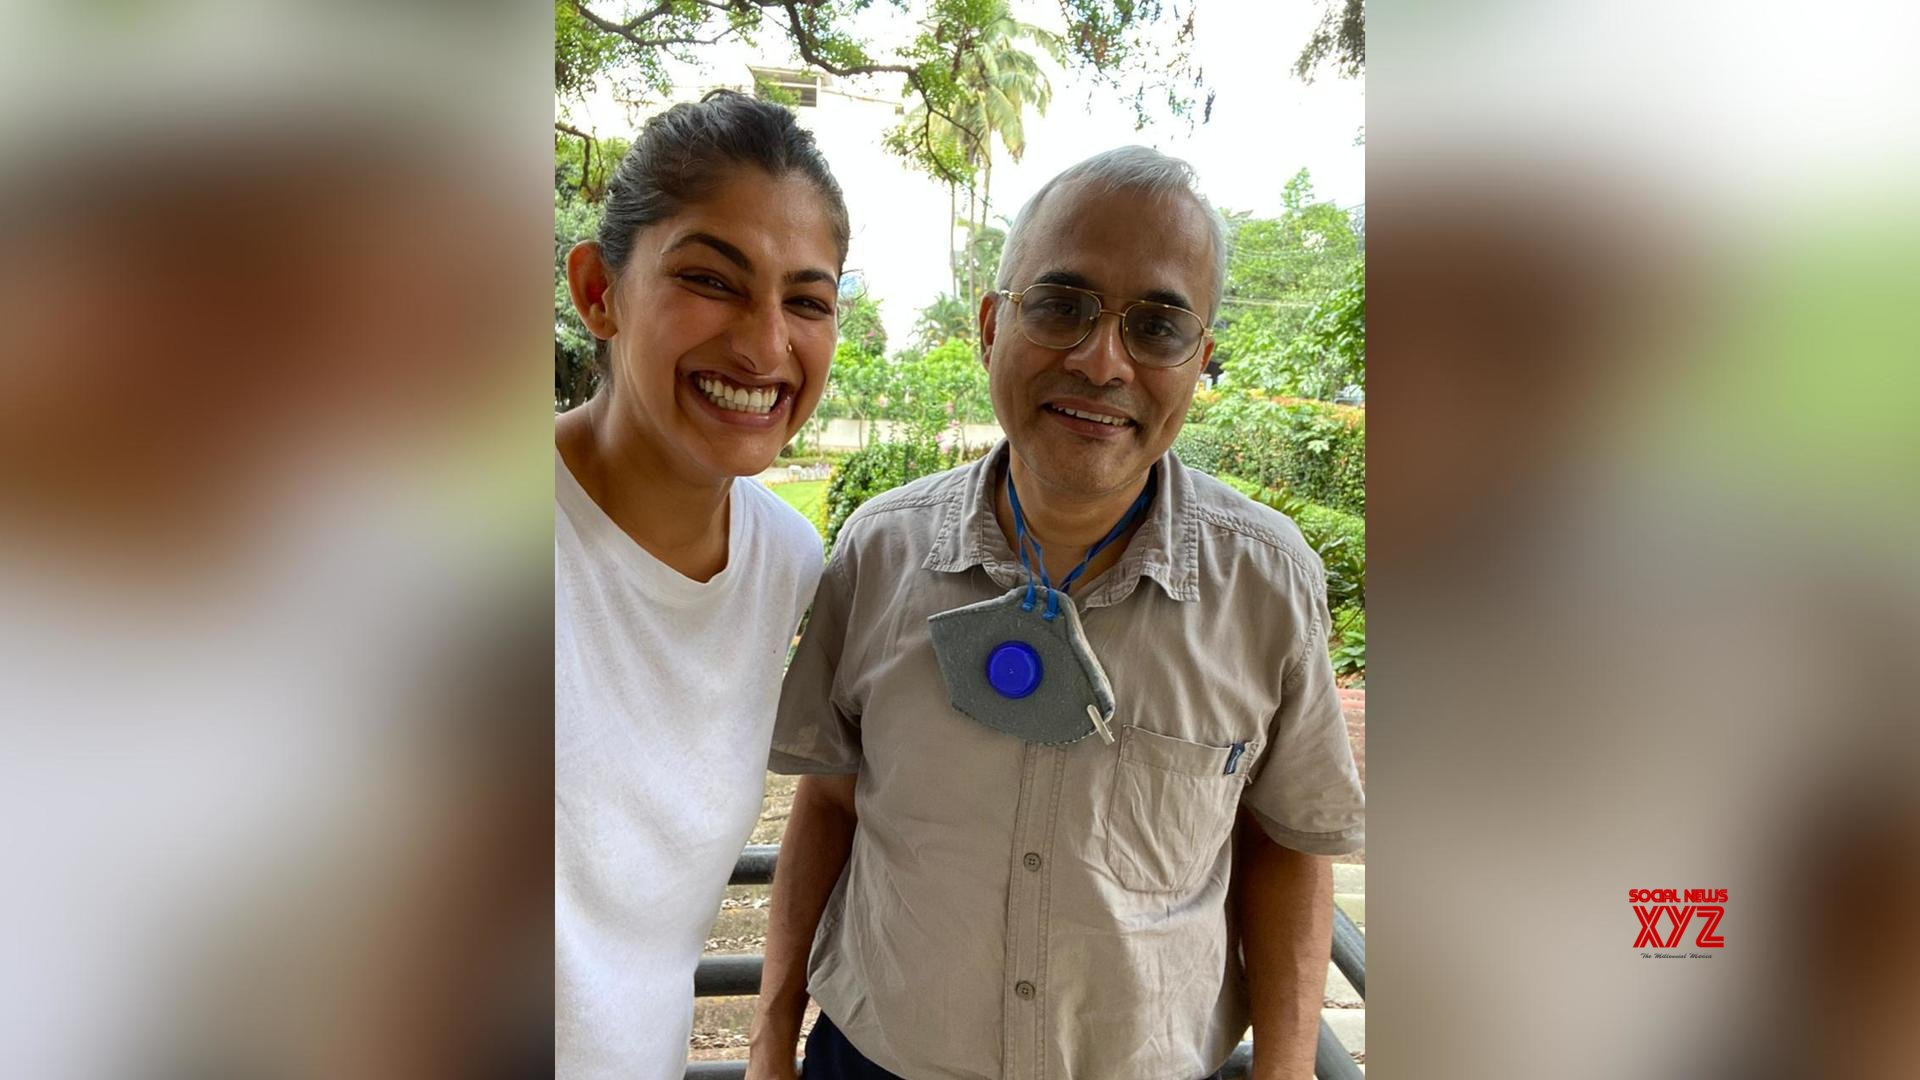 Kubbra Sait finds her favourite school teacher, Mr Chacko via social media! The actor shares an endearing birthday wish for him!